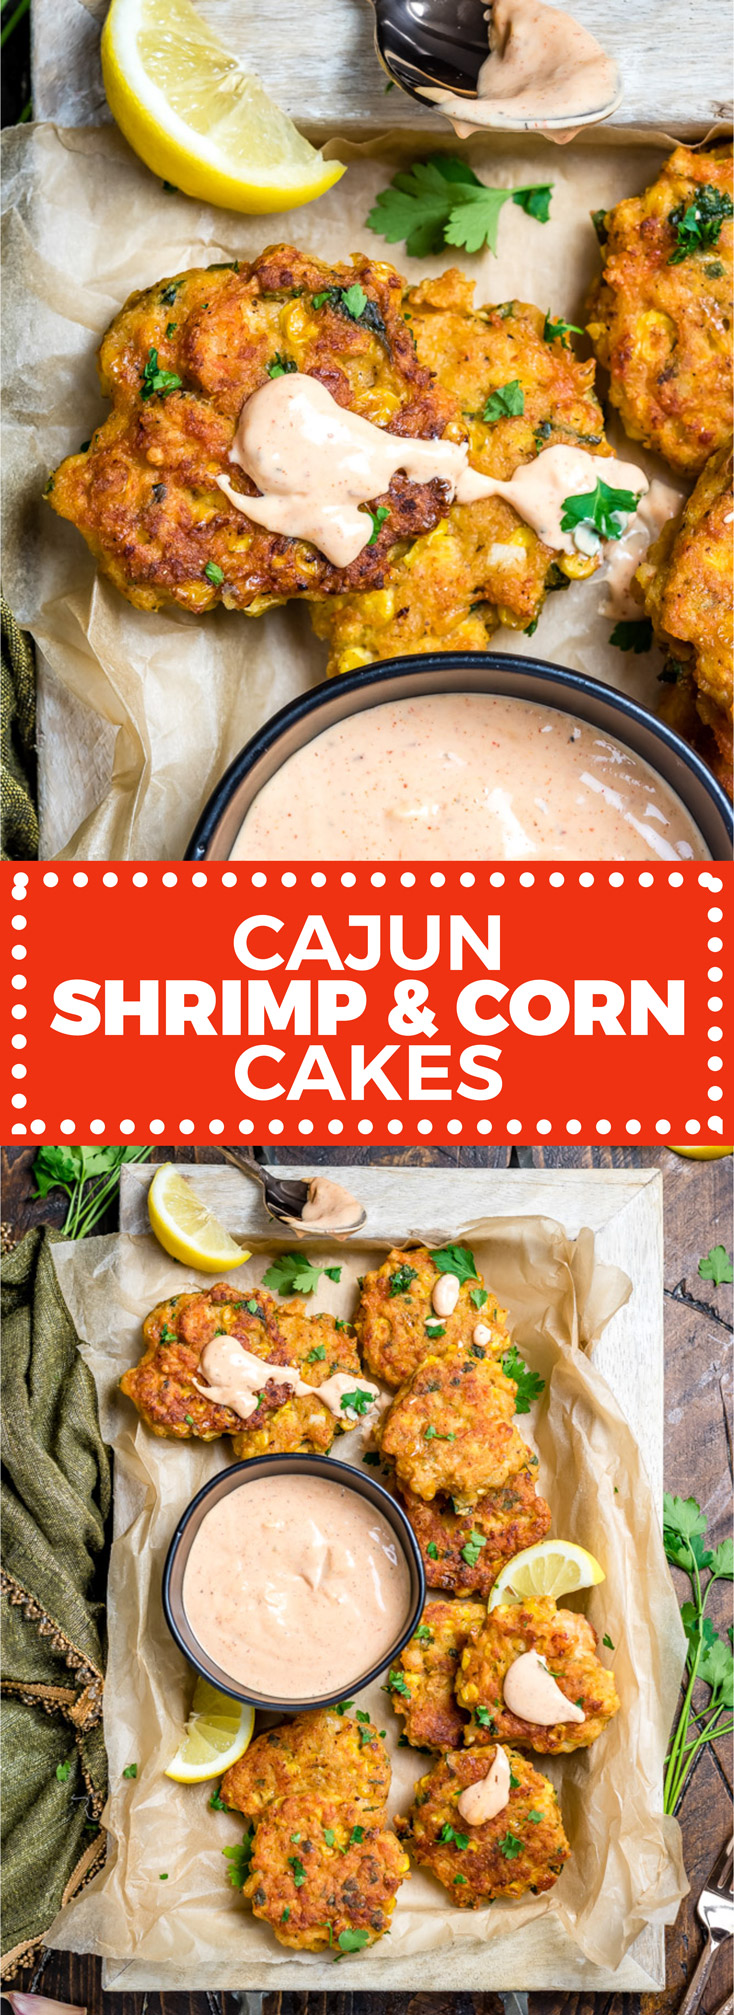 These Cajun Shrimp and Corn Cakes take just 20 minutes to make and even less time to fly off the plate. They're the perfect treat for seafood lovers, whether they're served for a Mardi Gras dinner, as a party appetizer, or simply on toasted buns with lettuce, onion, and remoulade. | hostthetoast.com